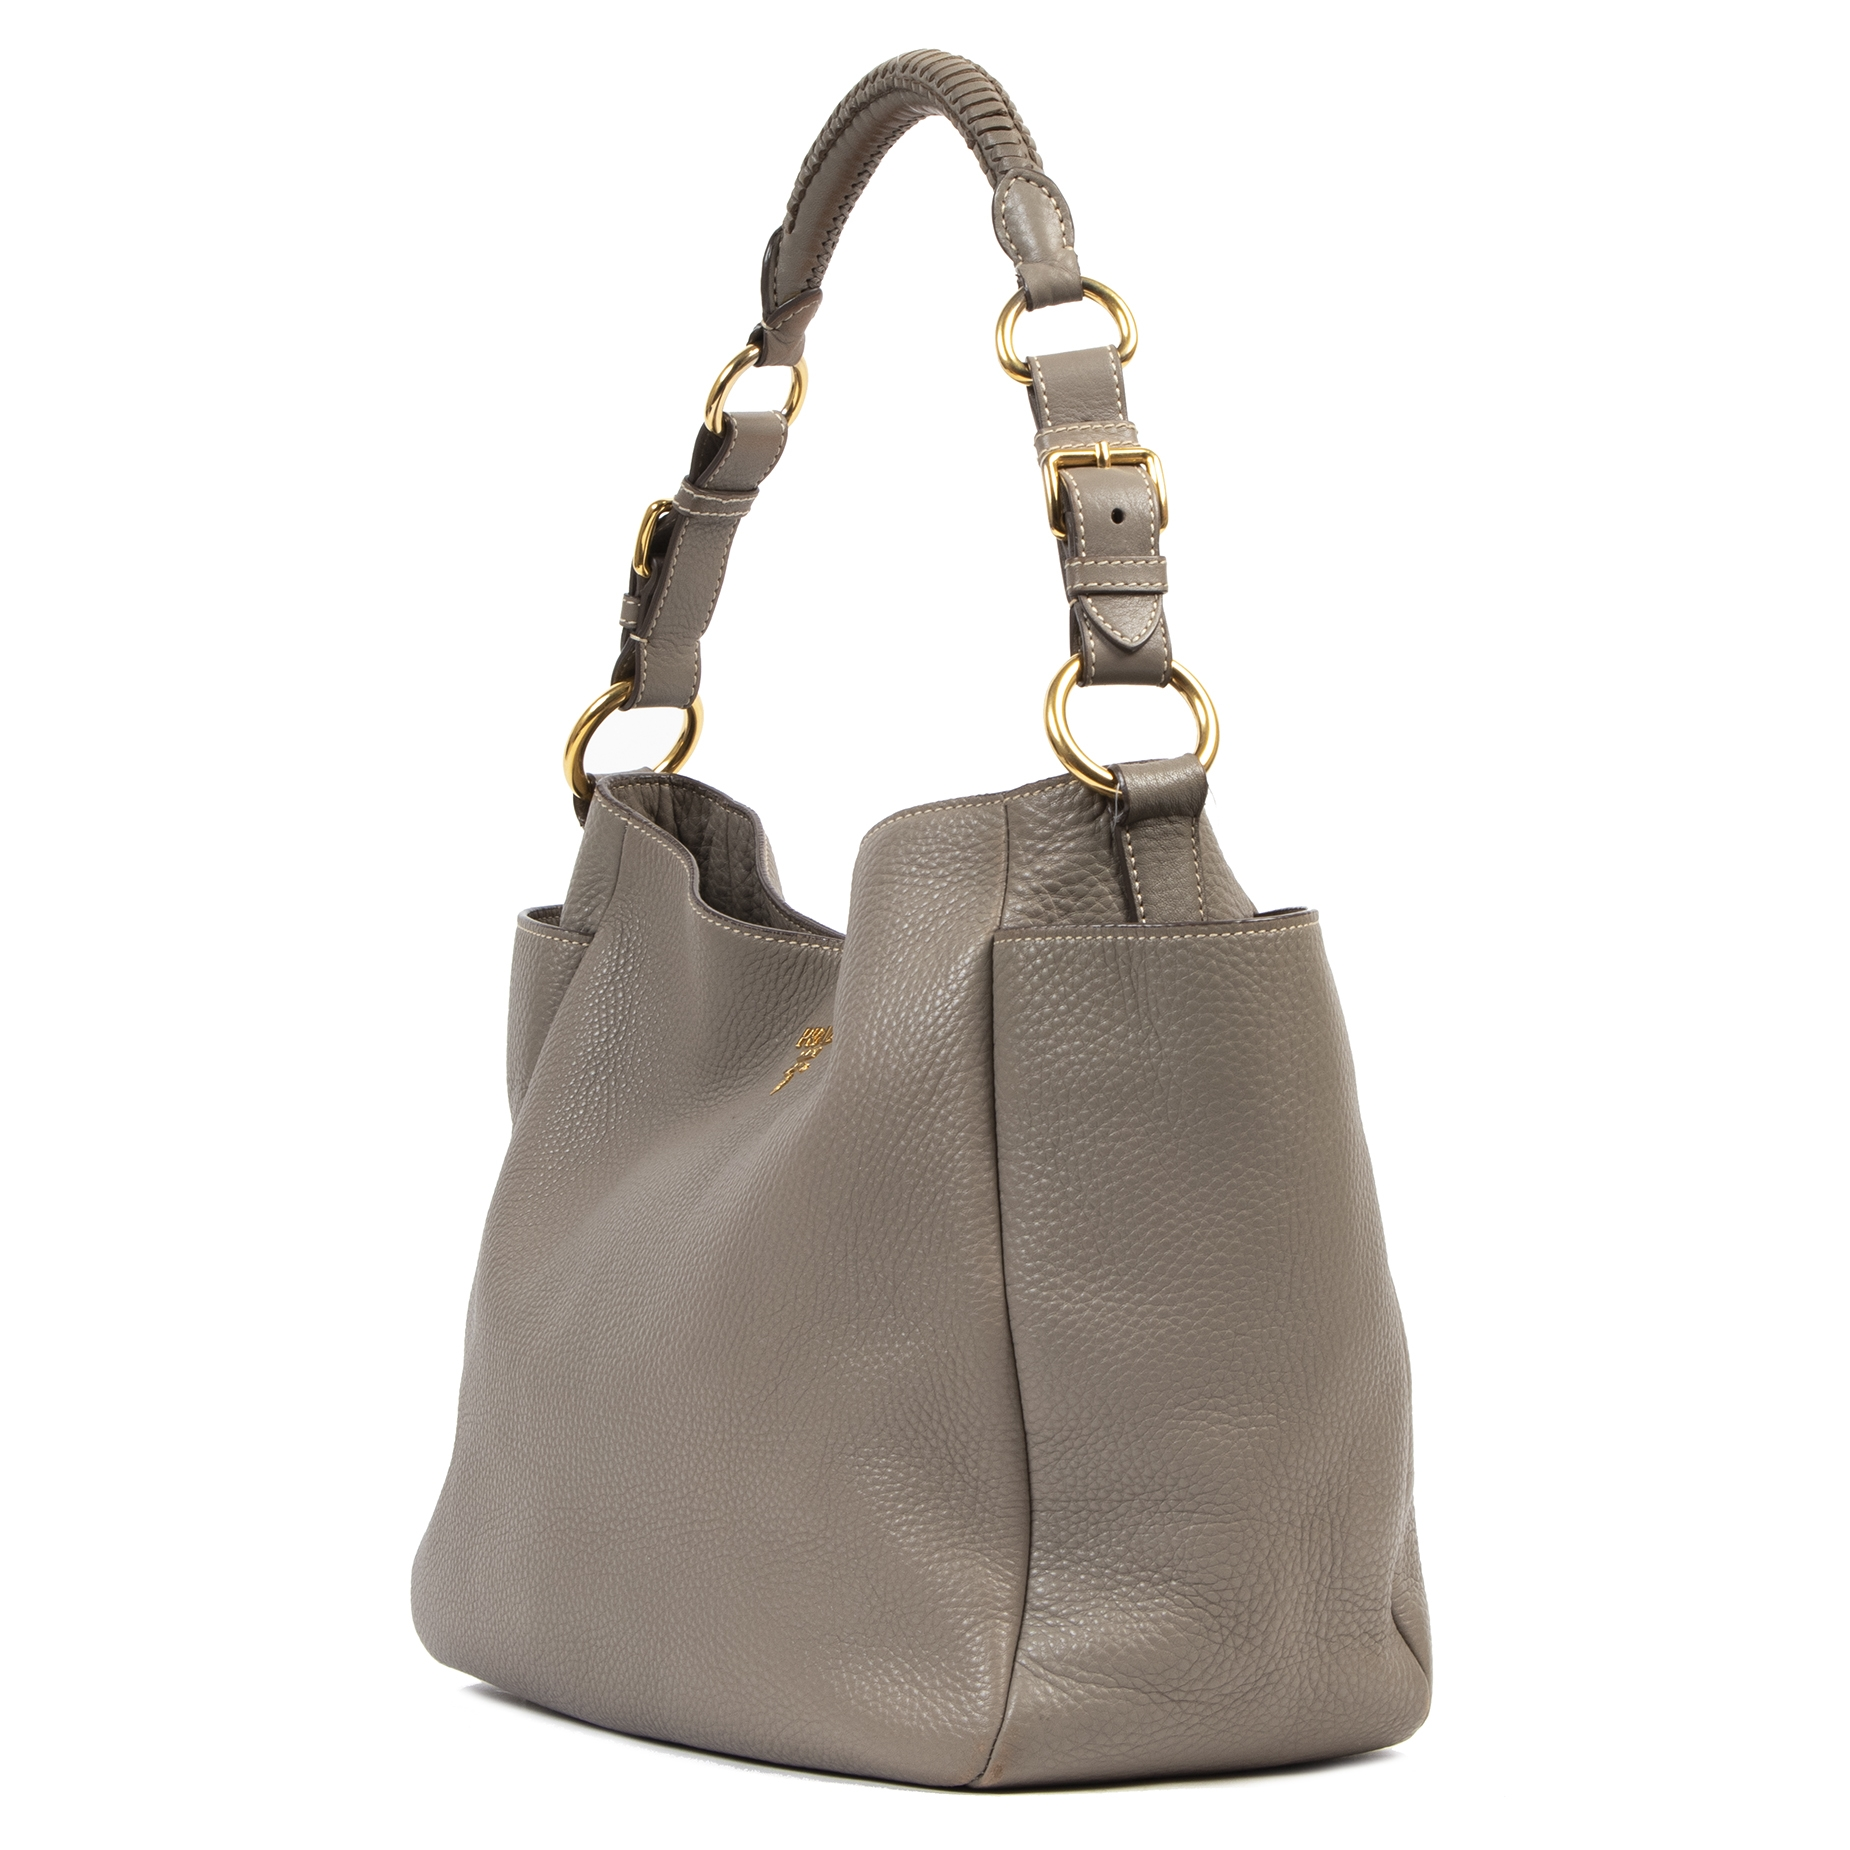 Pada Taupe Grey Hobo Bag to wear over the shoulder  available at Labellov secondhand luxury